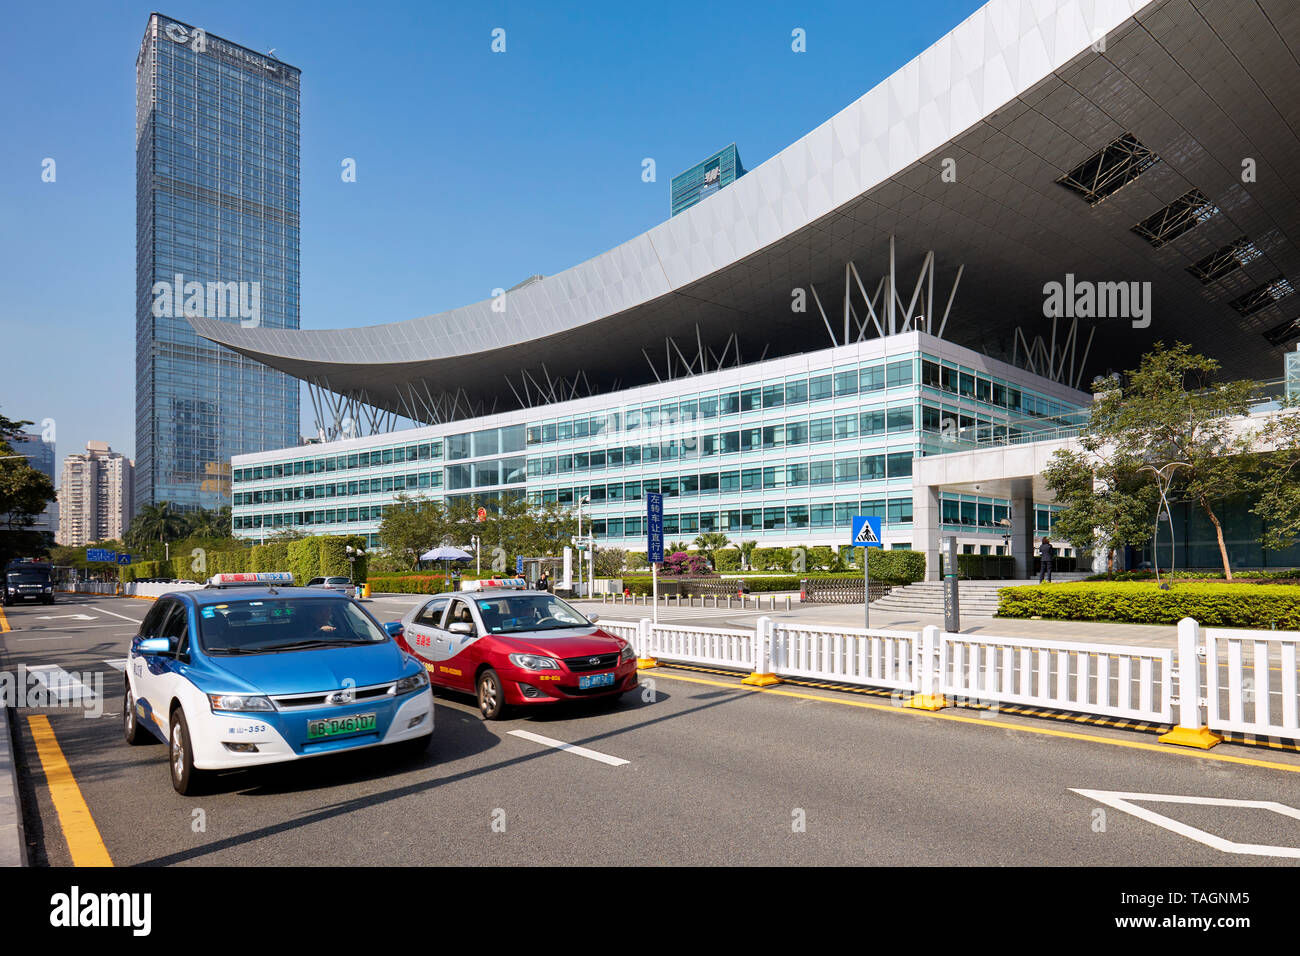 Blue electric and red petrol taxi cabs passing by Shenzhen Civic Center. Shenzhen, Guangdong Province, China. - Stock Image